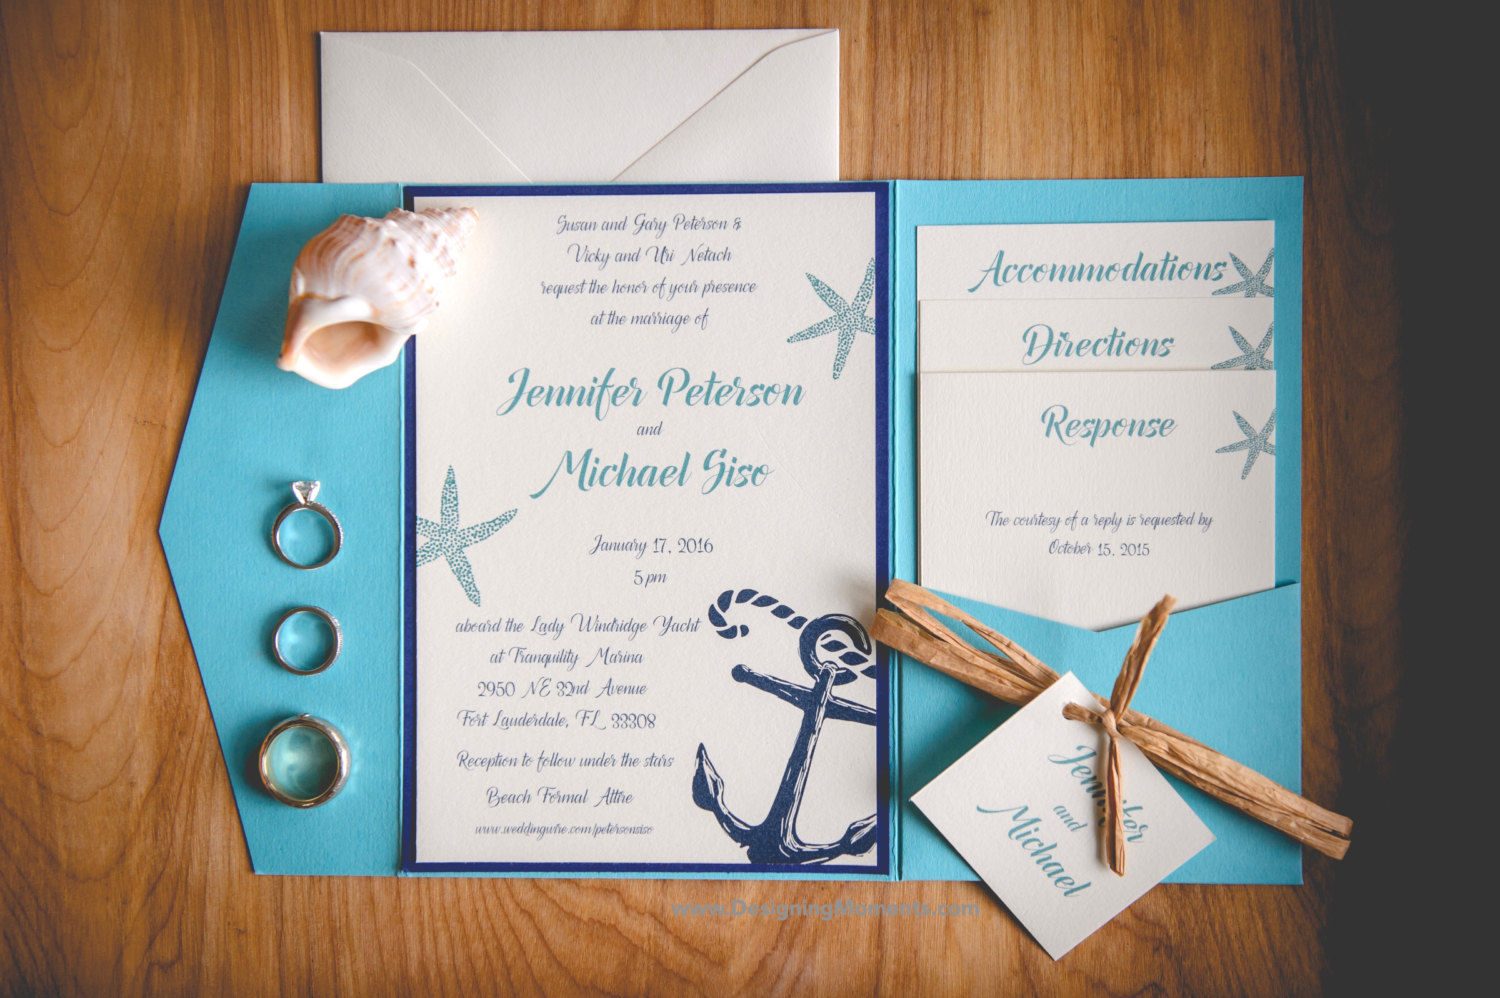 Spread the Word with Stylish and Original Beach Wedding ...